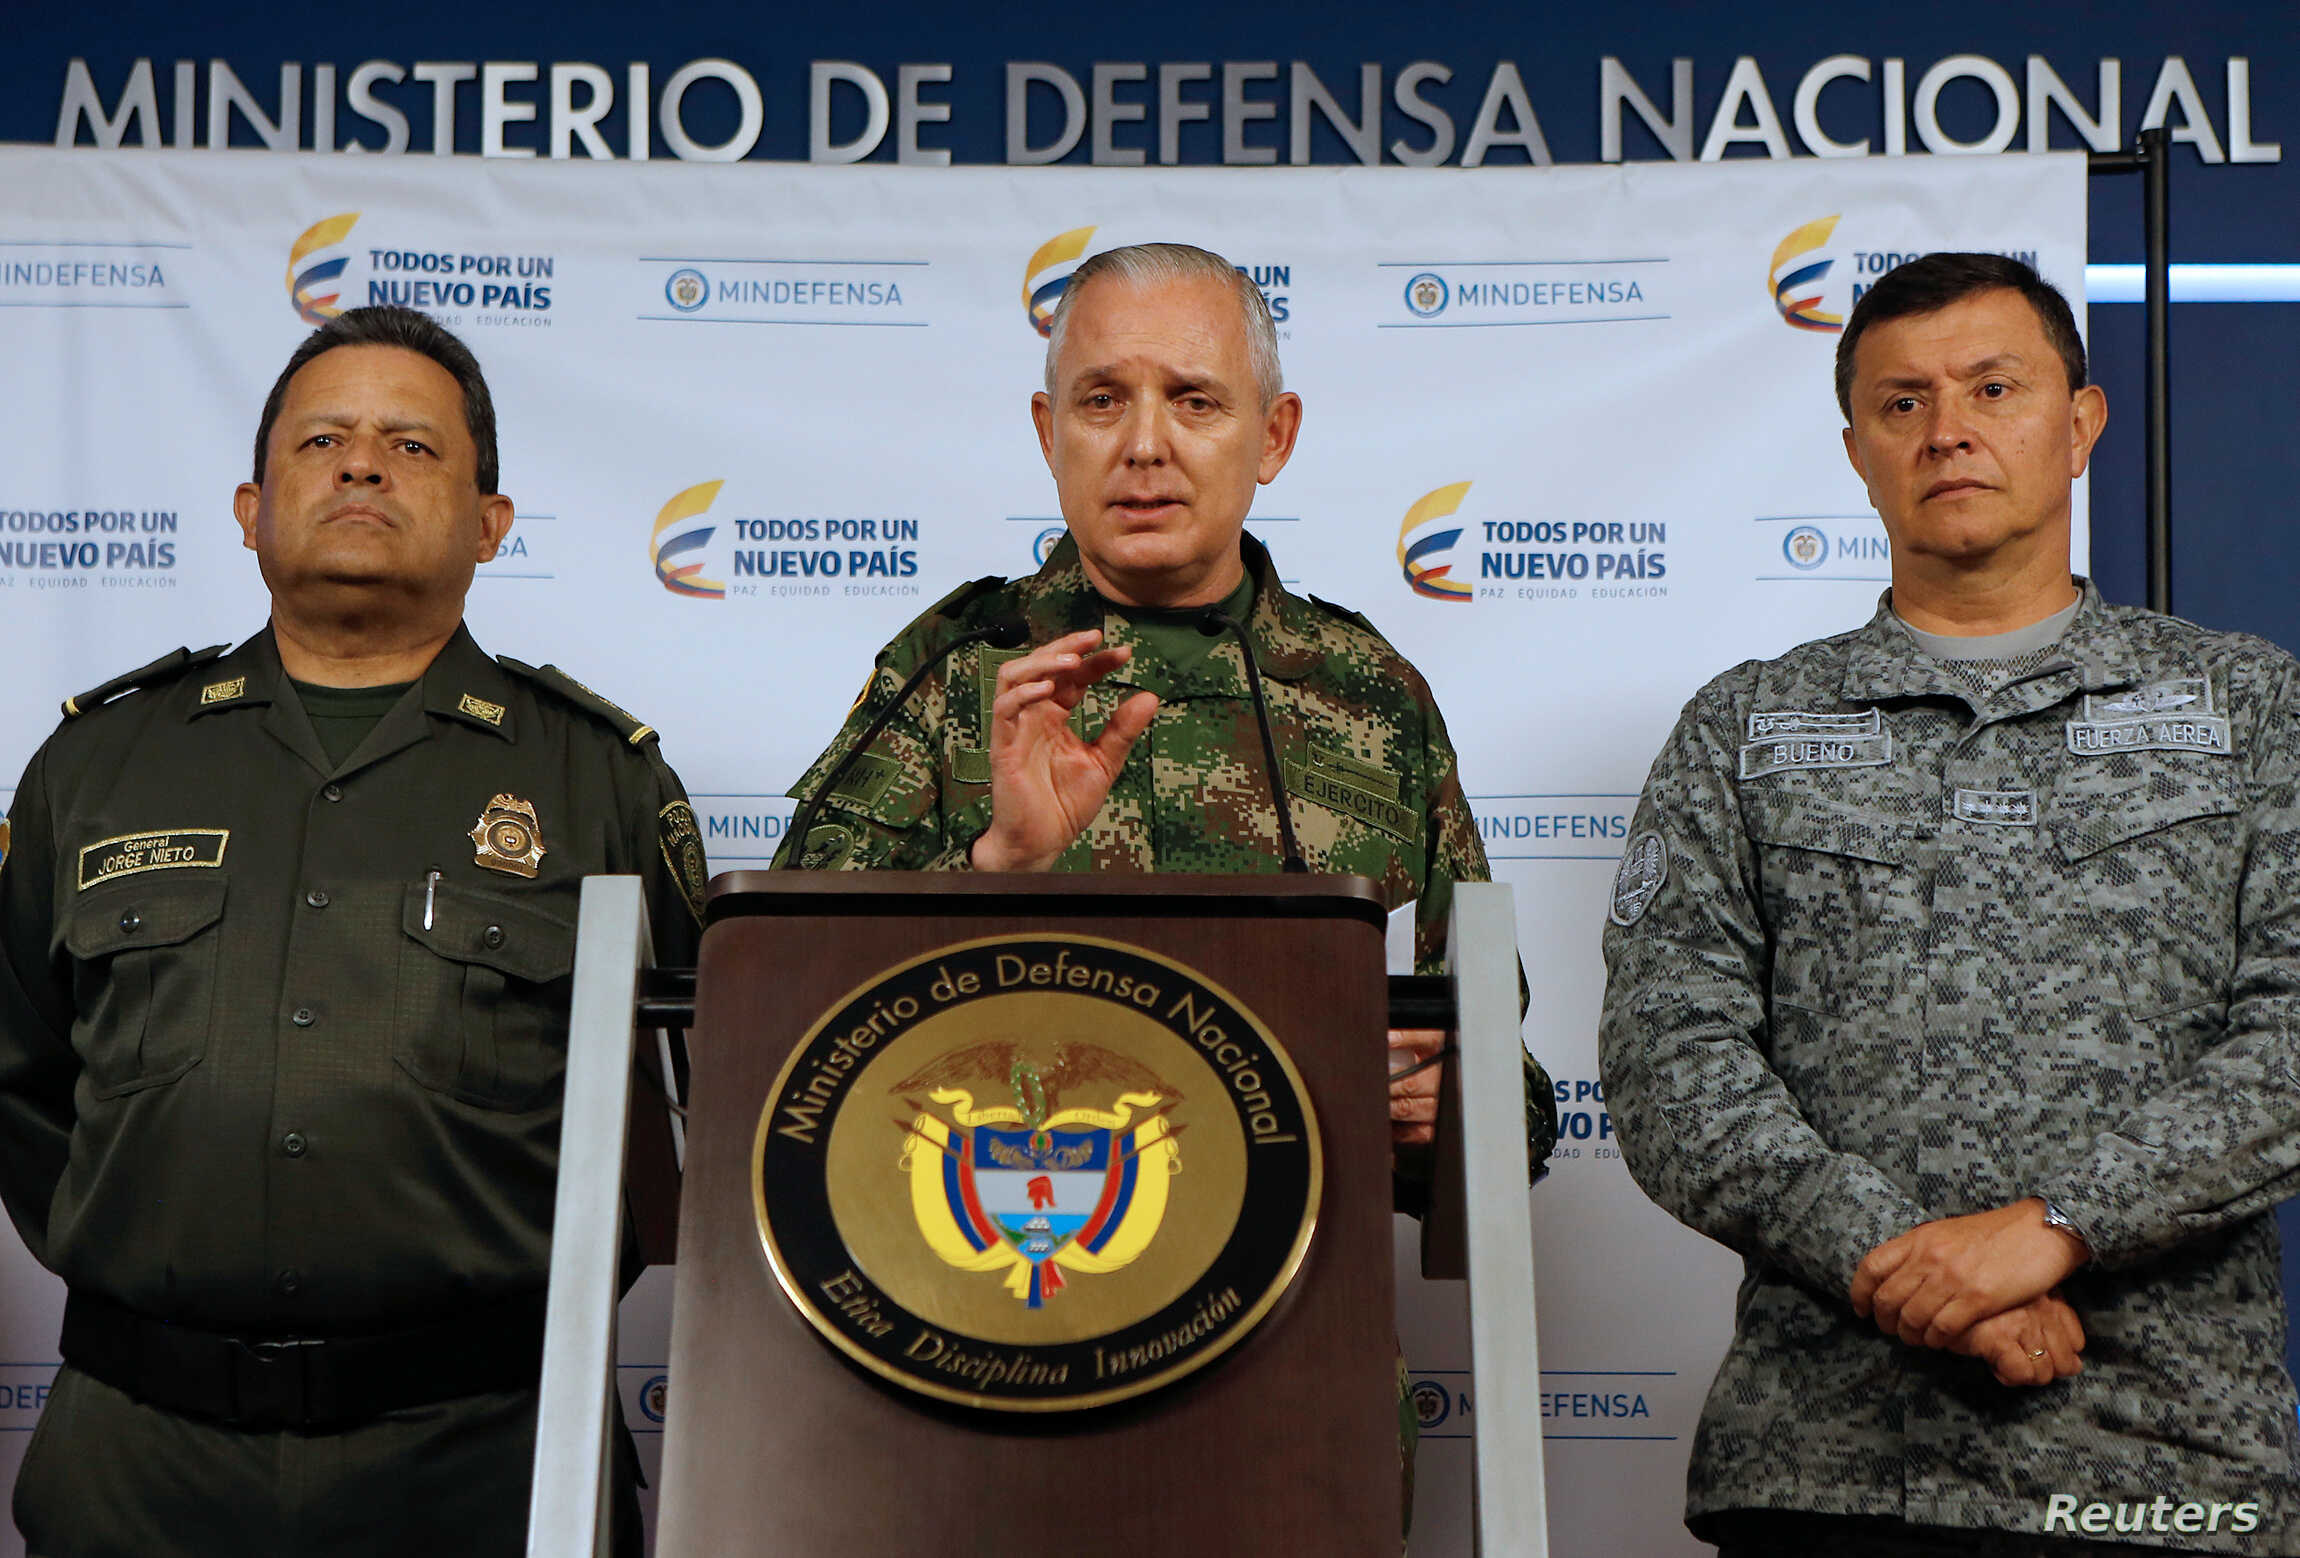 Alberto Mejia, General Commander of the Colombian National Army, speaks during a news conference in Bogota, Colombia, March 20, 2018.